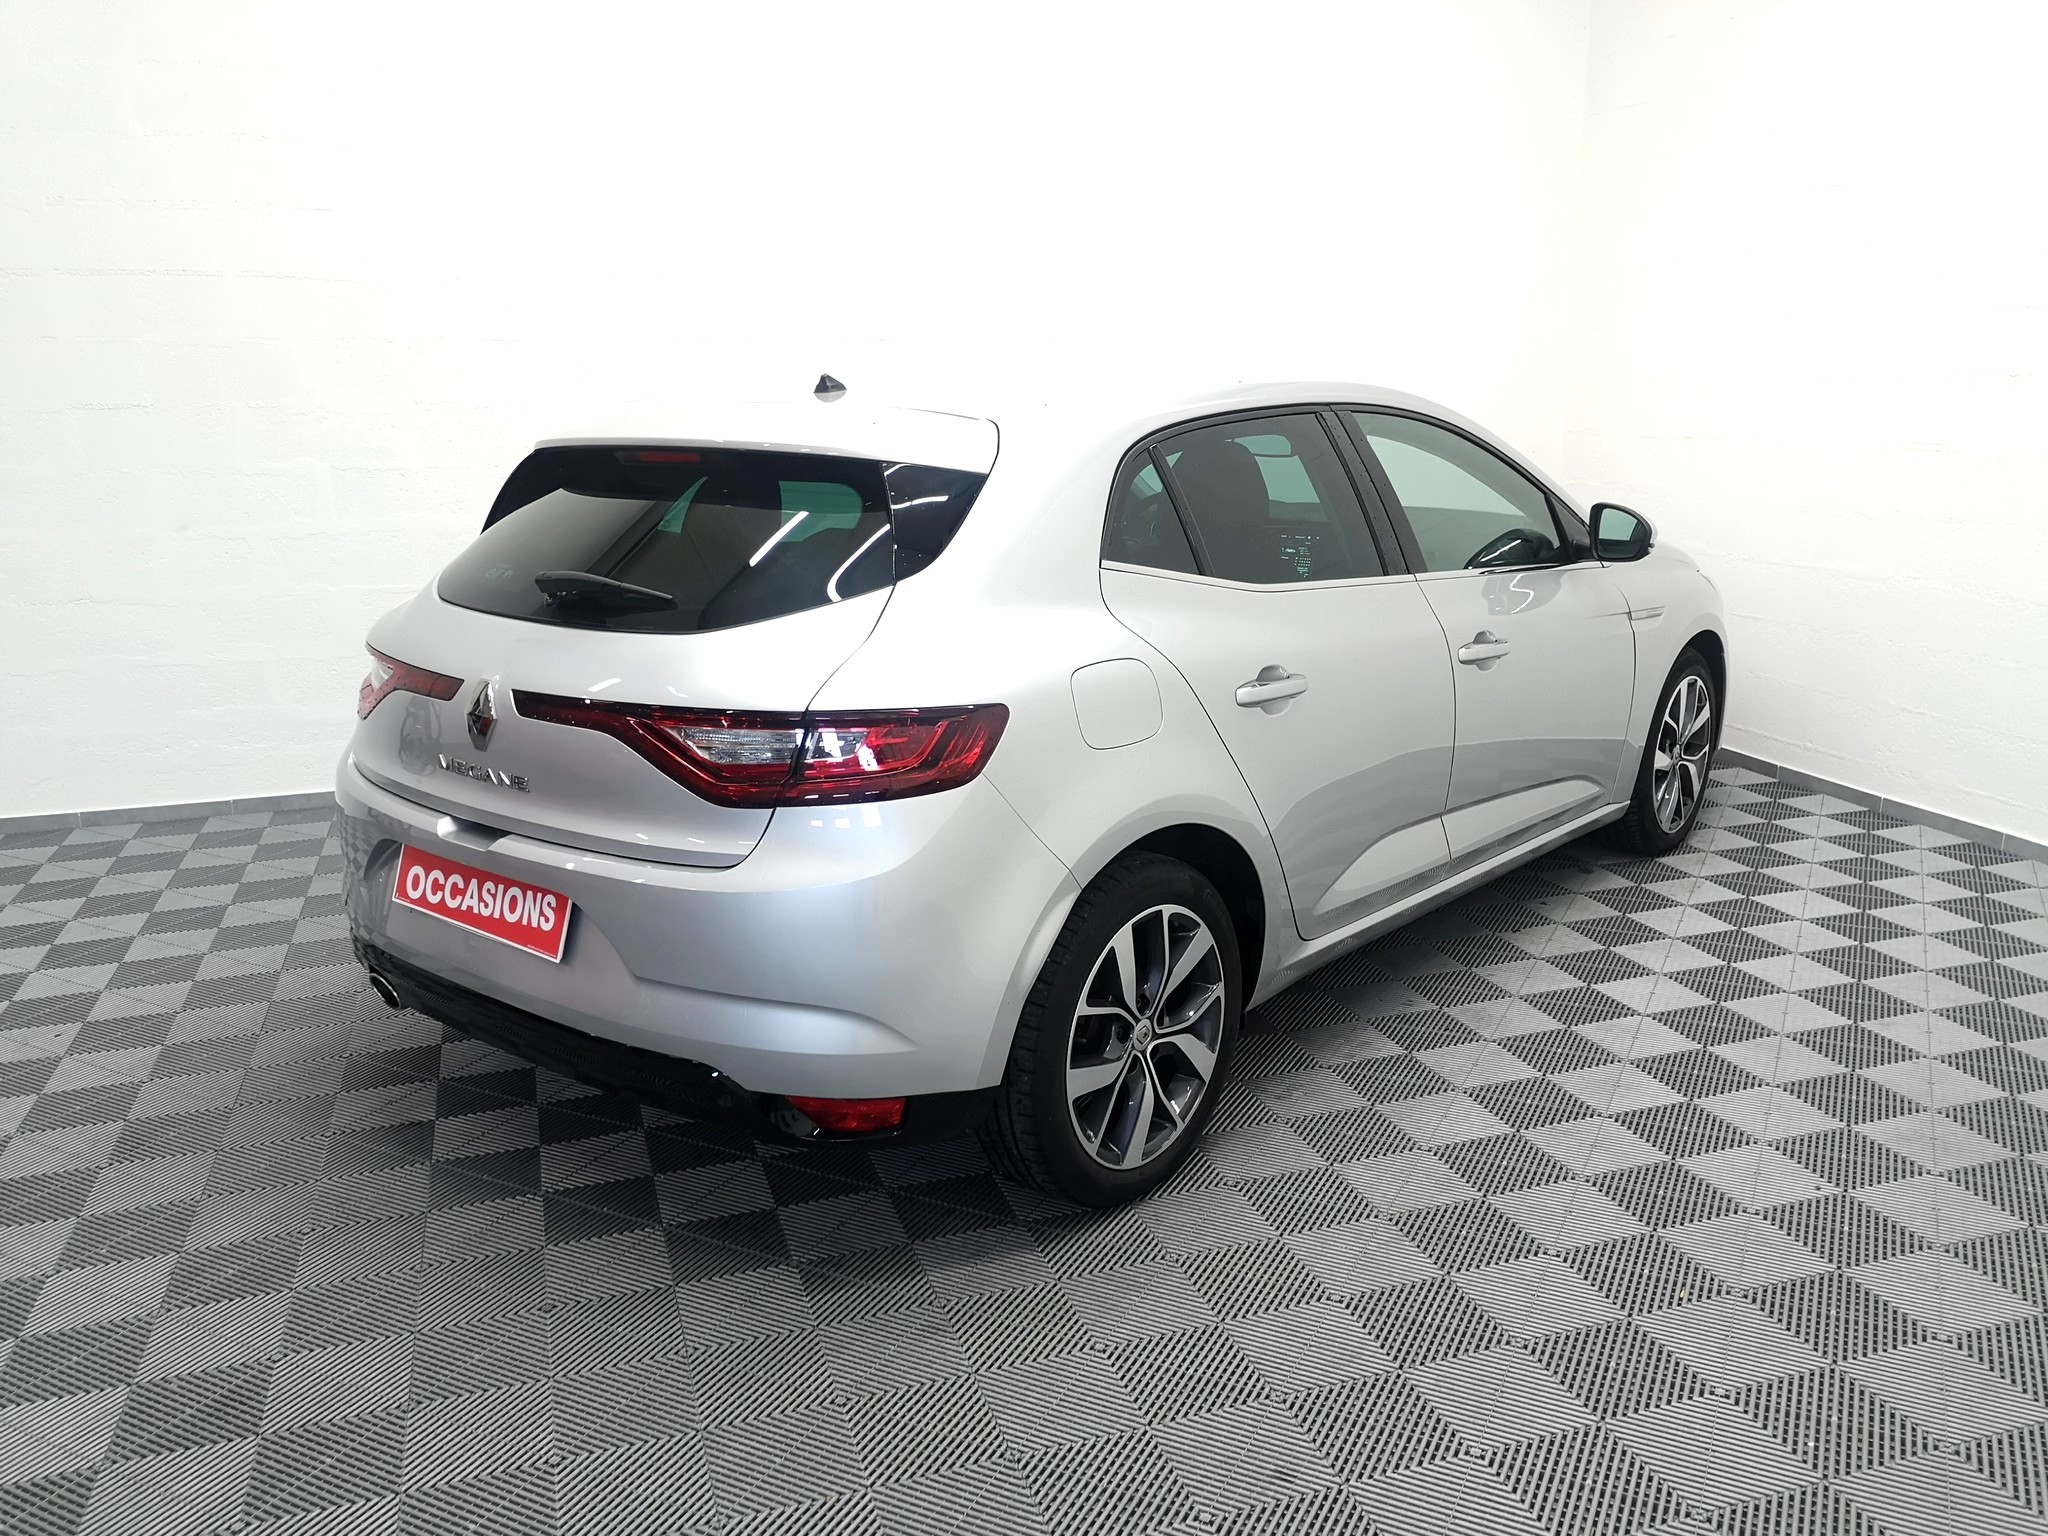 RENAULT MEGANE IV BERLINE 2016 à 14900 € - Photo n°4